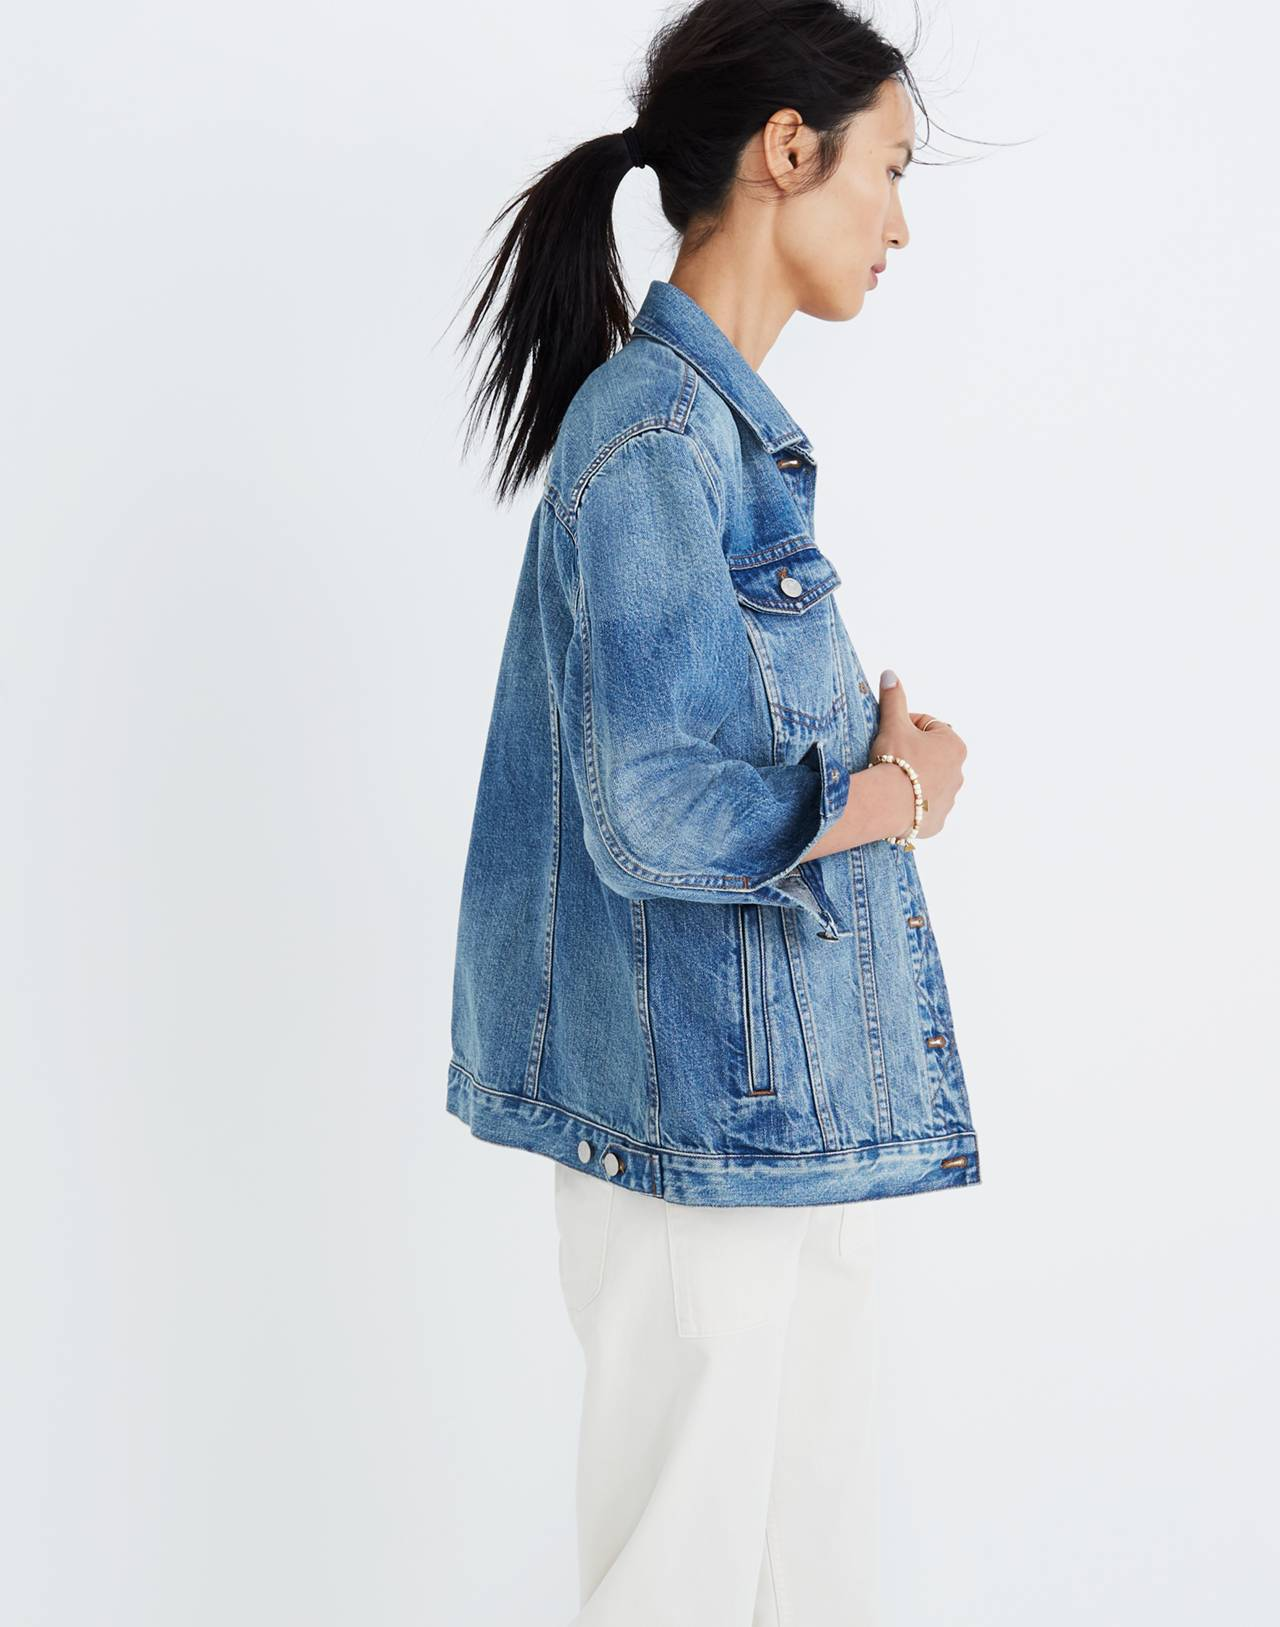 The Oversized Jean Jacket in Capstone Wash in capstone wash image 3